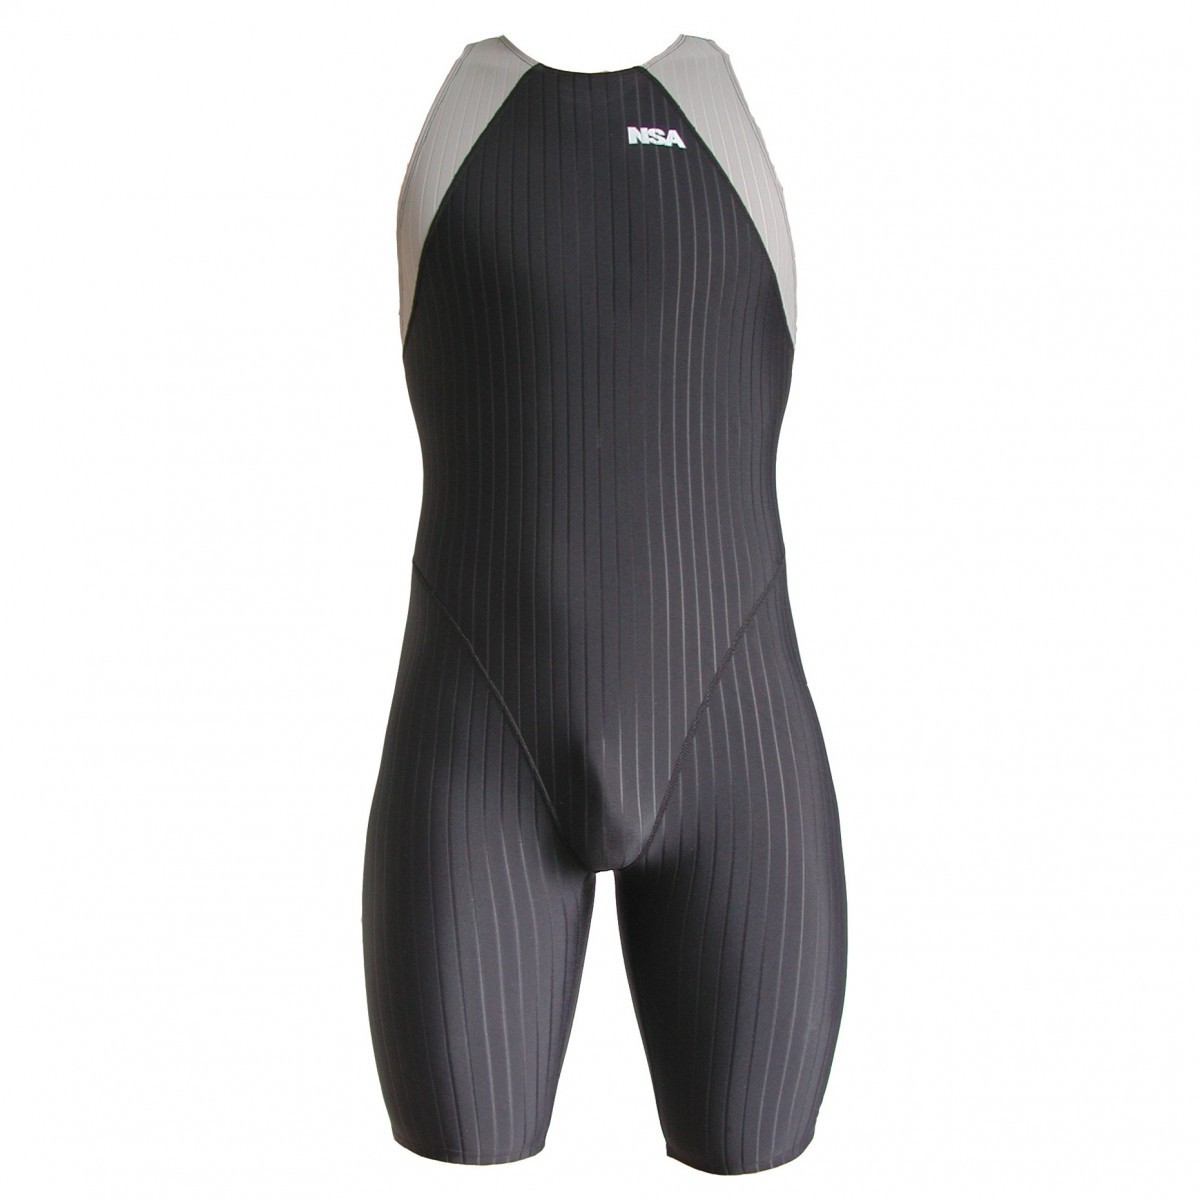 NSA Triathlon Einteiler Tri-Power II Herren